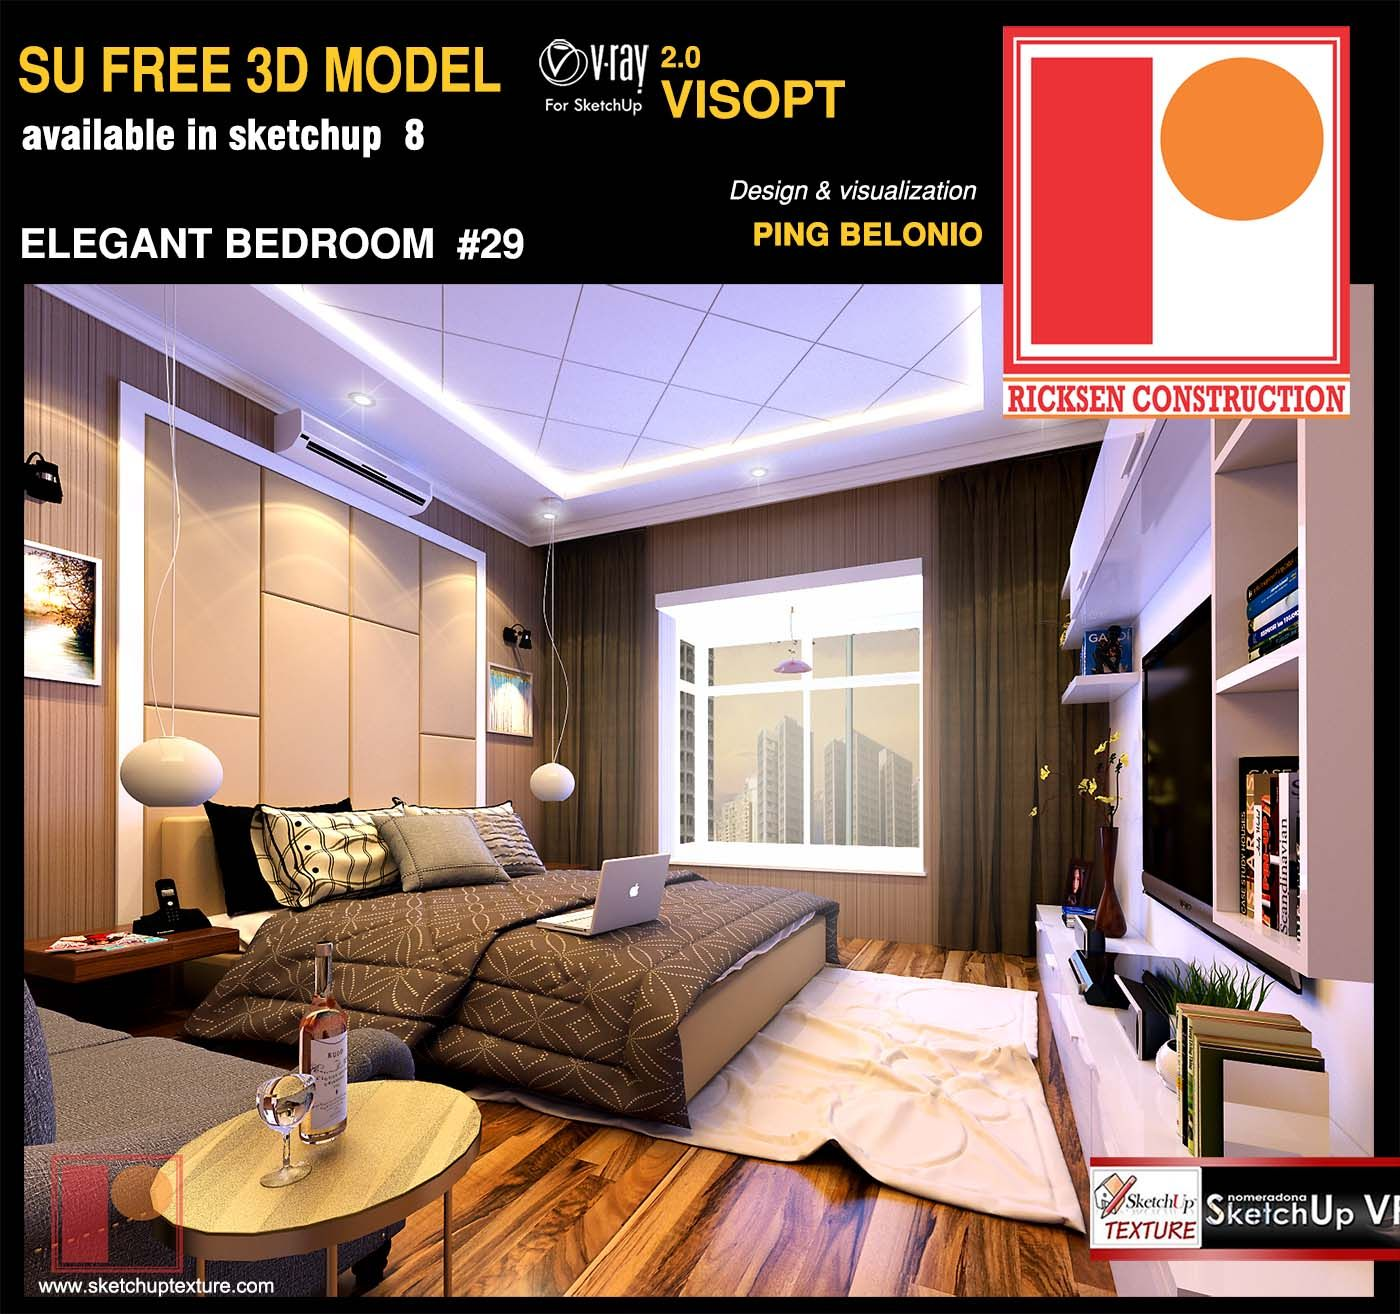 Bedroom Designer Free Pin By Sketchup Texture On Sketchup Free 3d Models